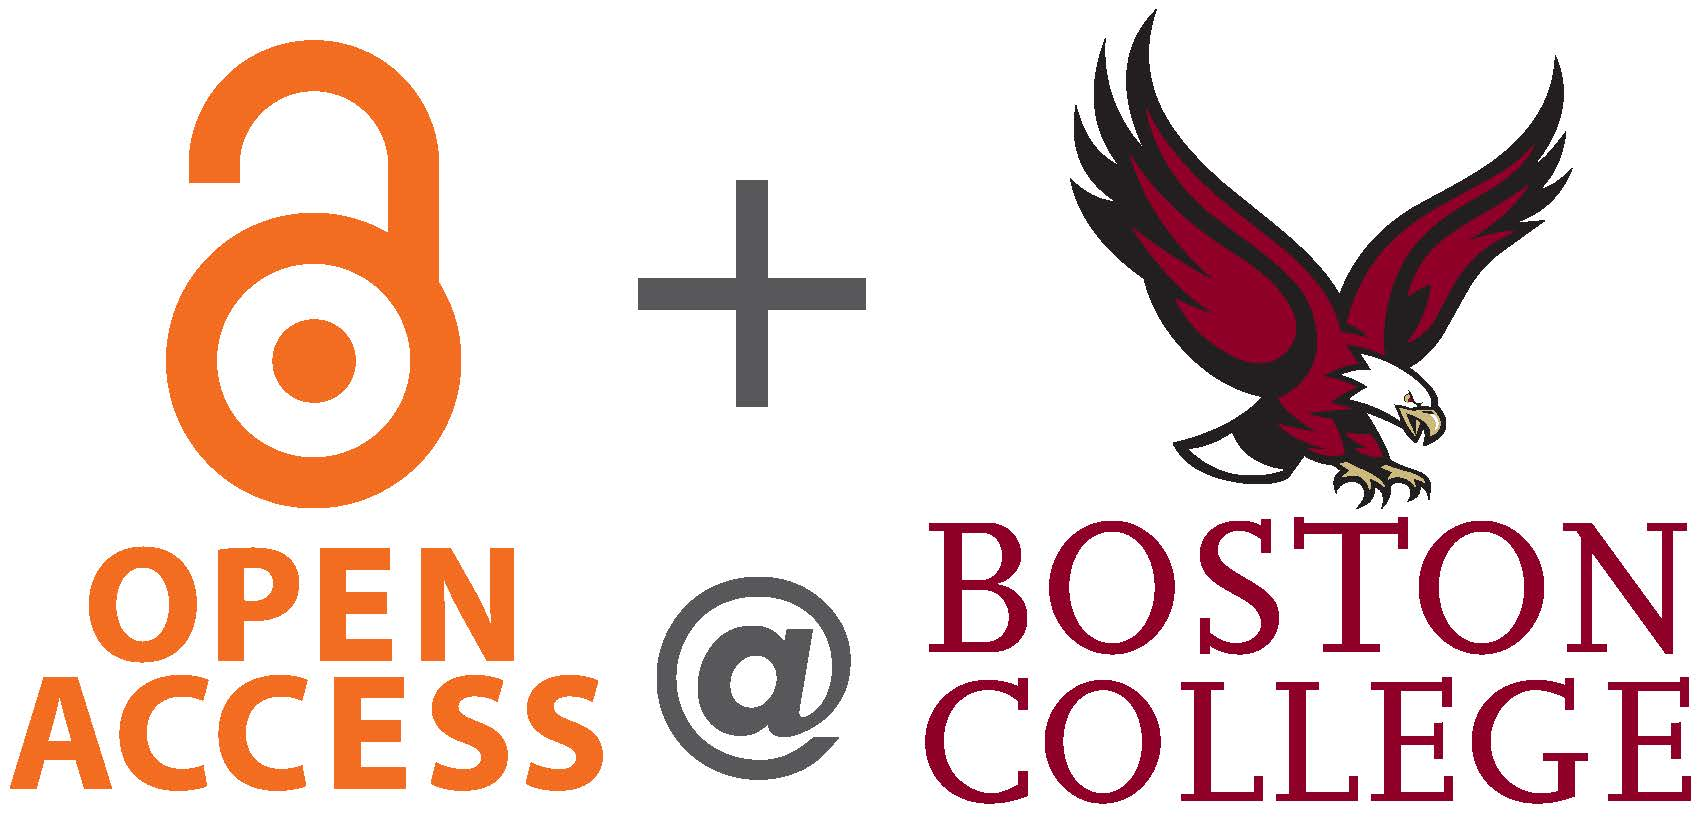 Open Access at Boston College logo